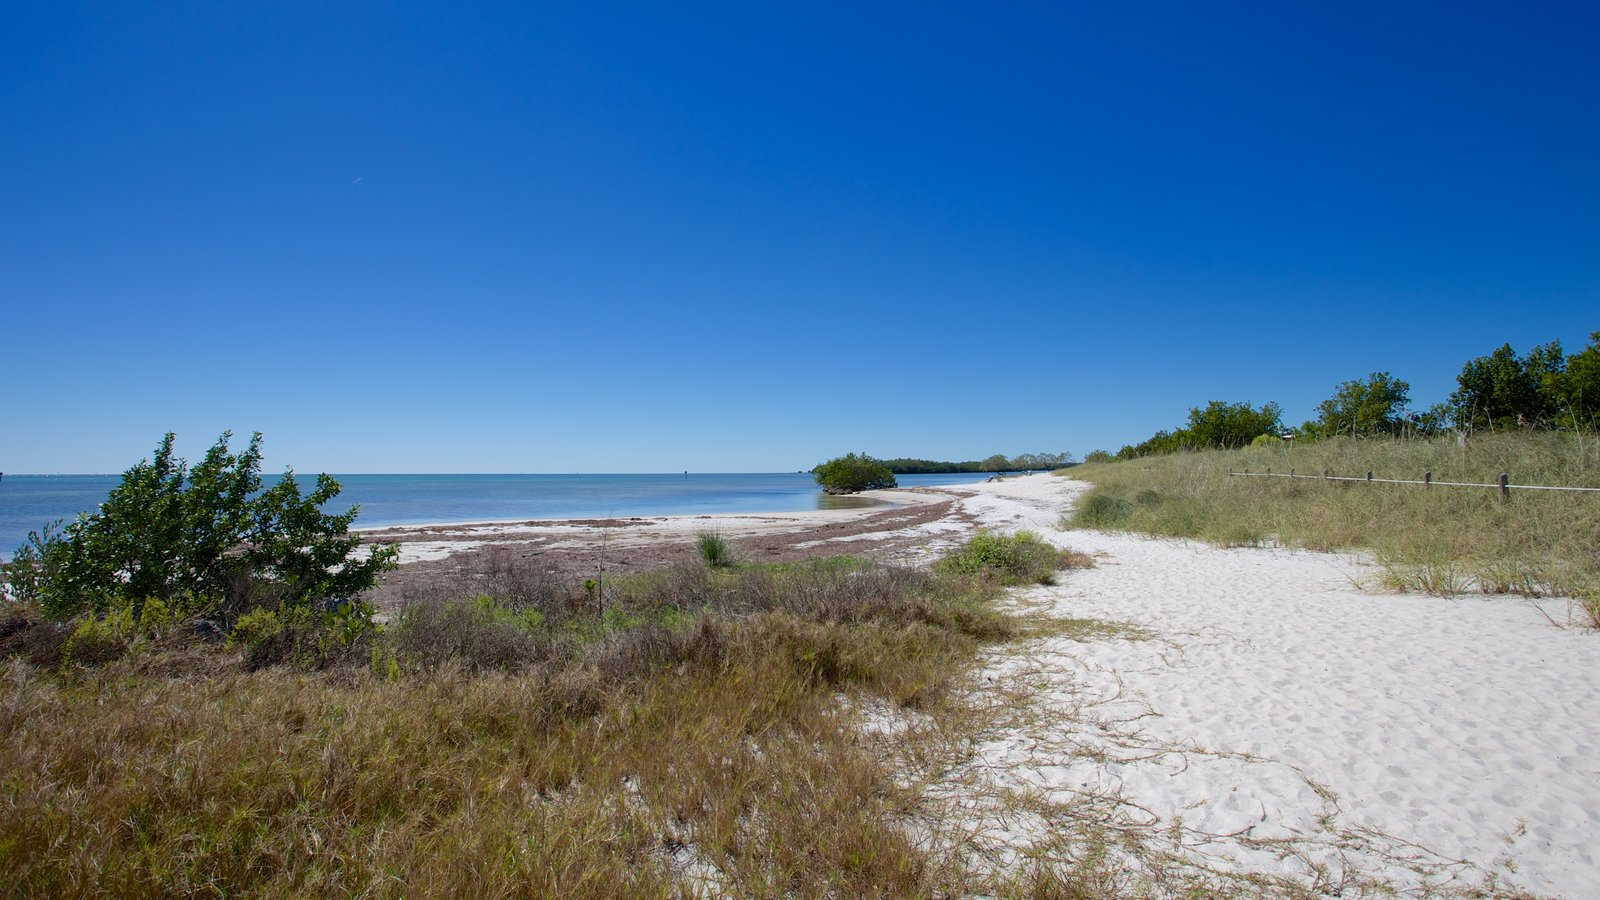 curry hammock state park showing a beach and a bay or harbor nature pictures  view images of marathon  rh   expedia